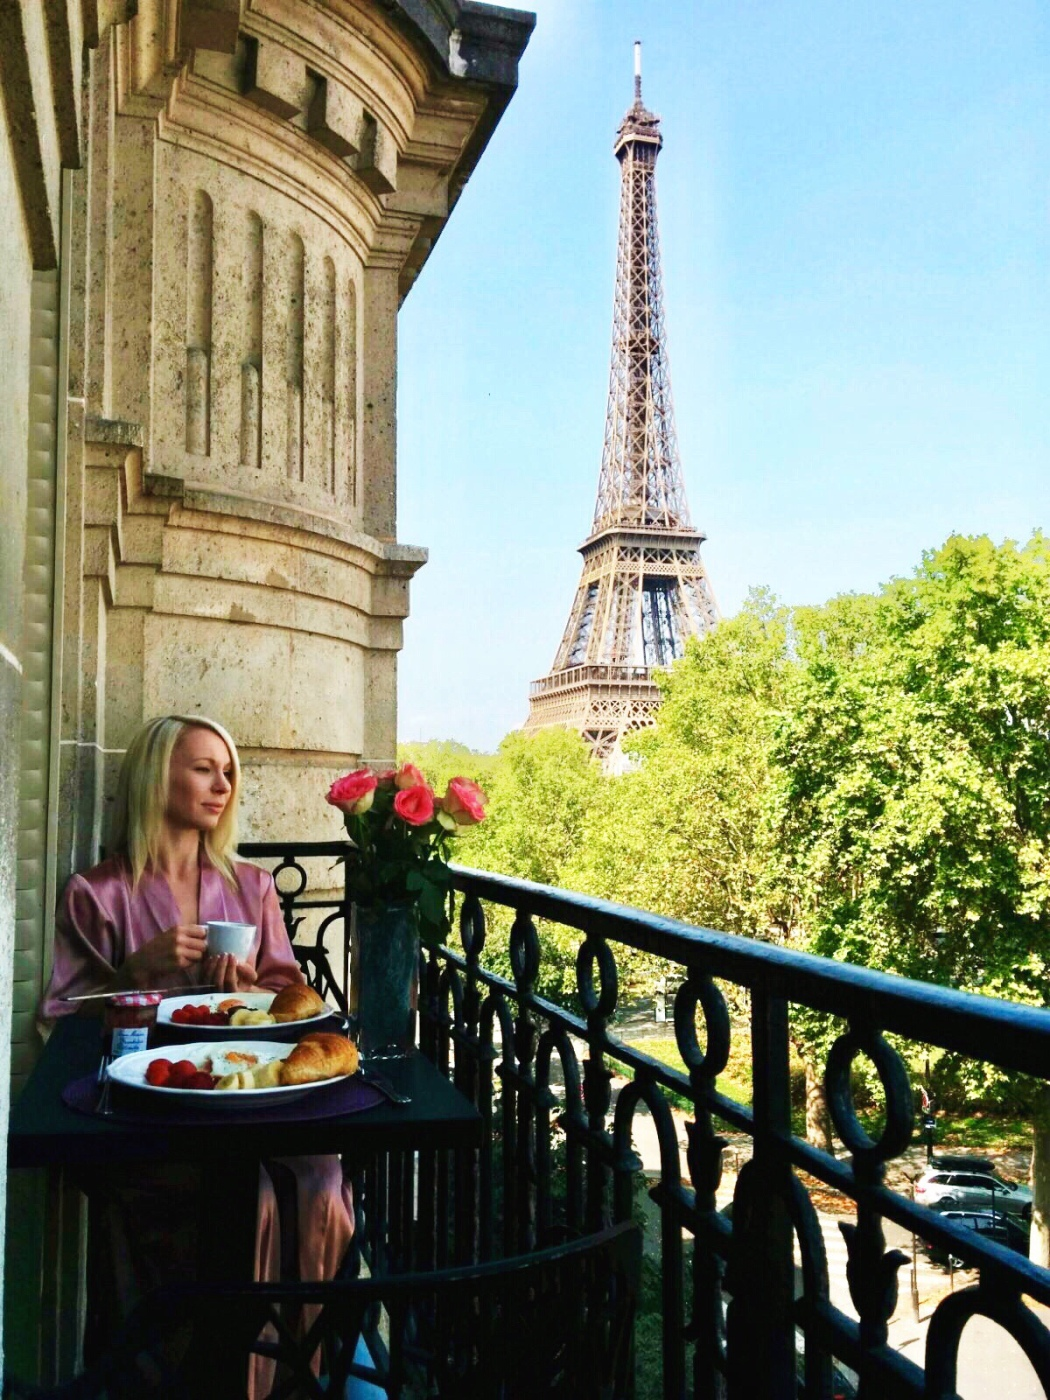 Blonde girl sits on a balcony and eats breakfast with the view of the Eiffel Tower in the background in Paris France